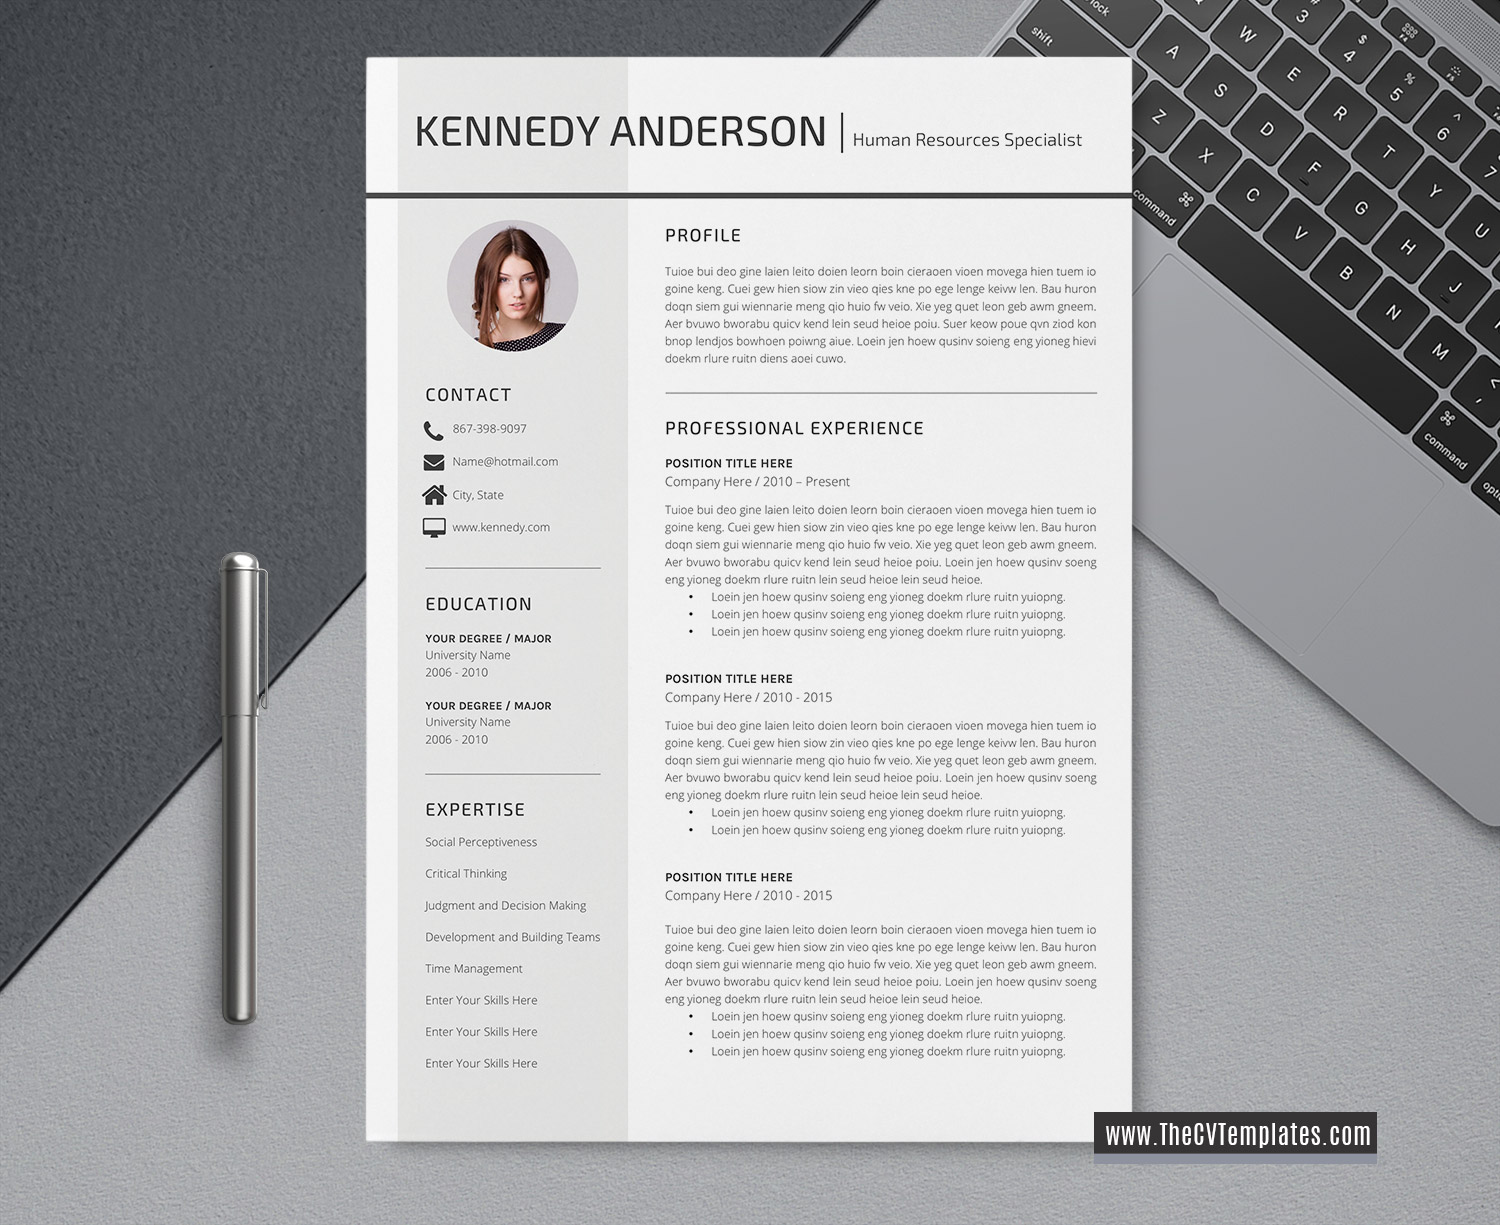 2020 modern cv template for ms word  curriculum vitae  professional resume format  creative